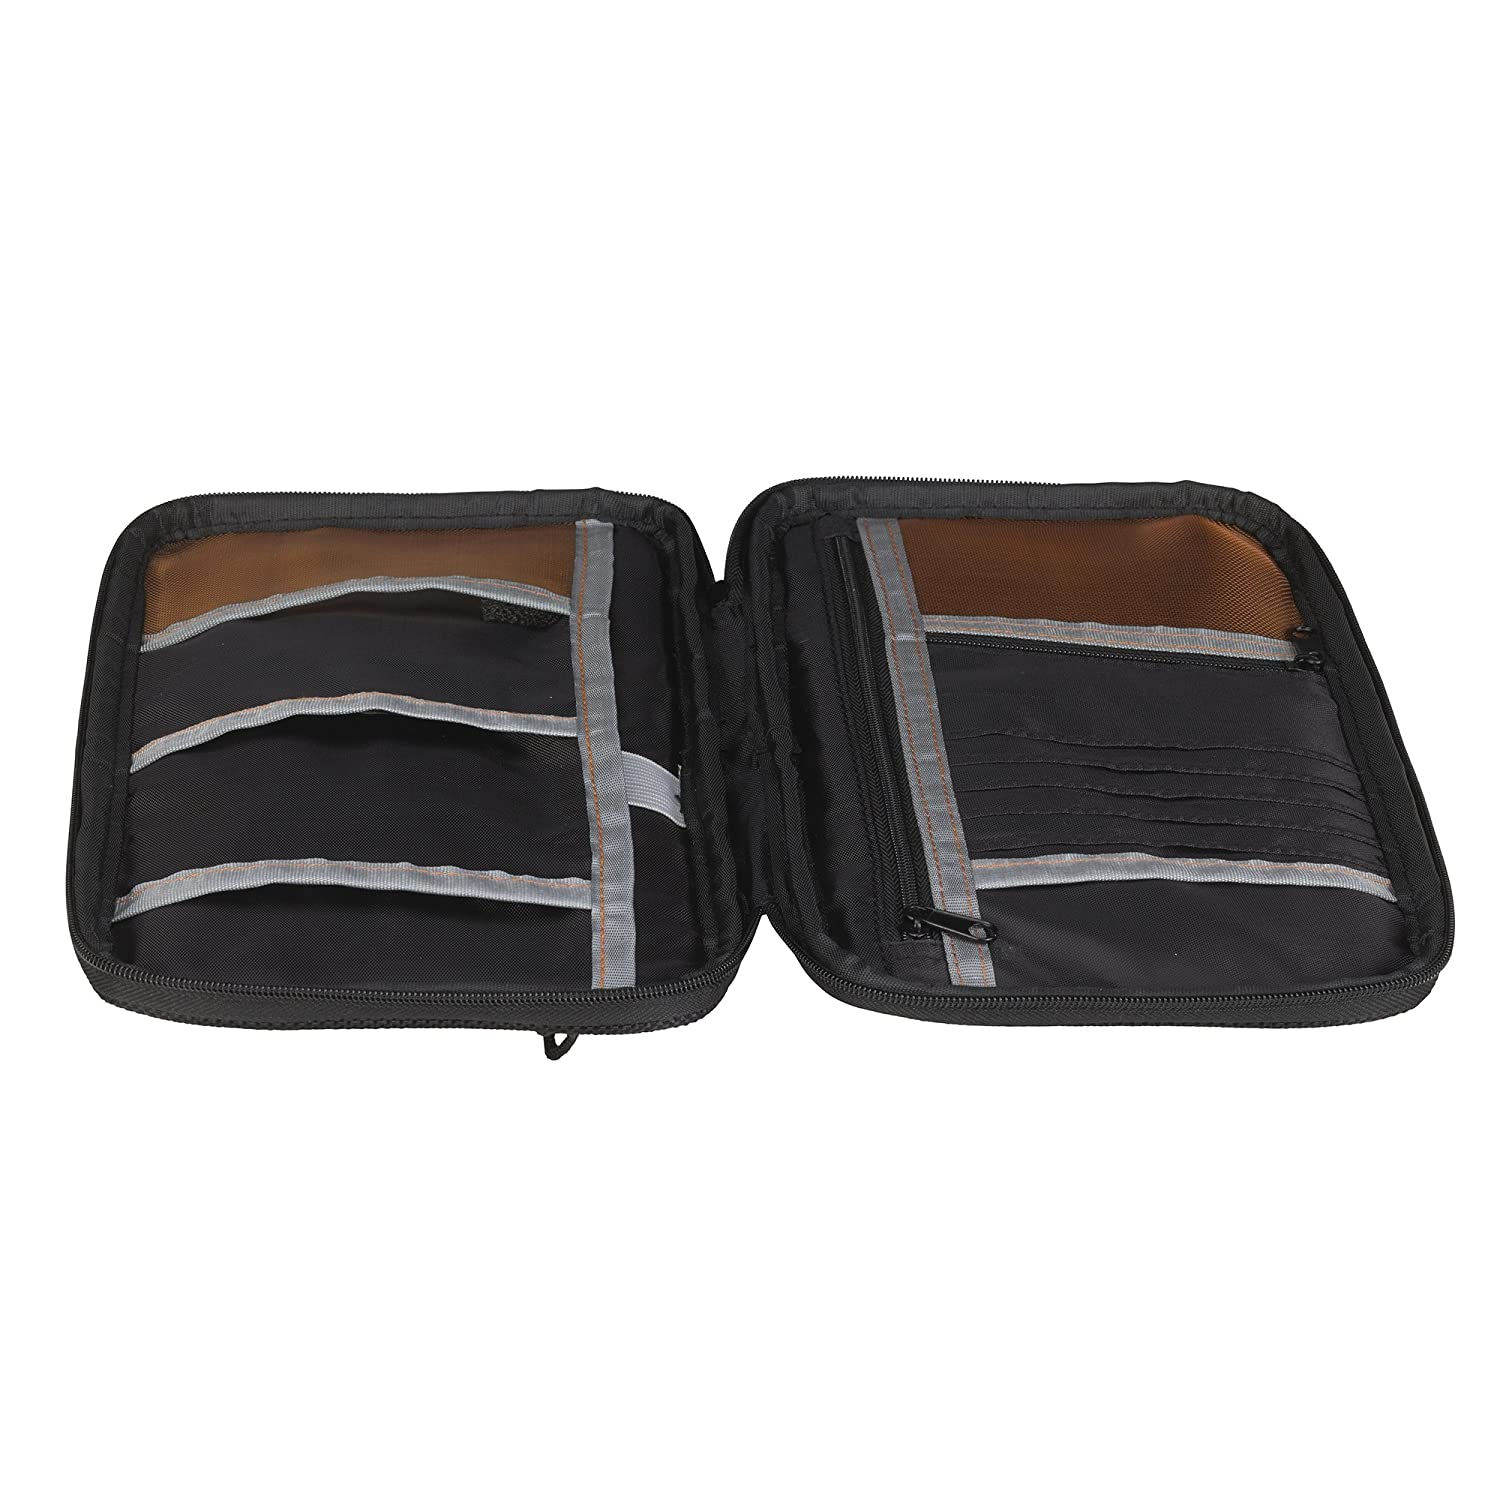 Bagages RFID Document Organizer Noir Taille